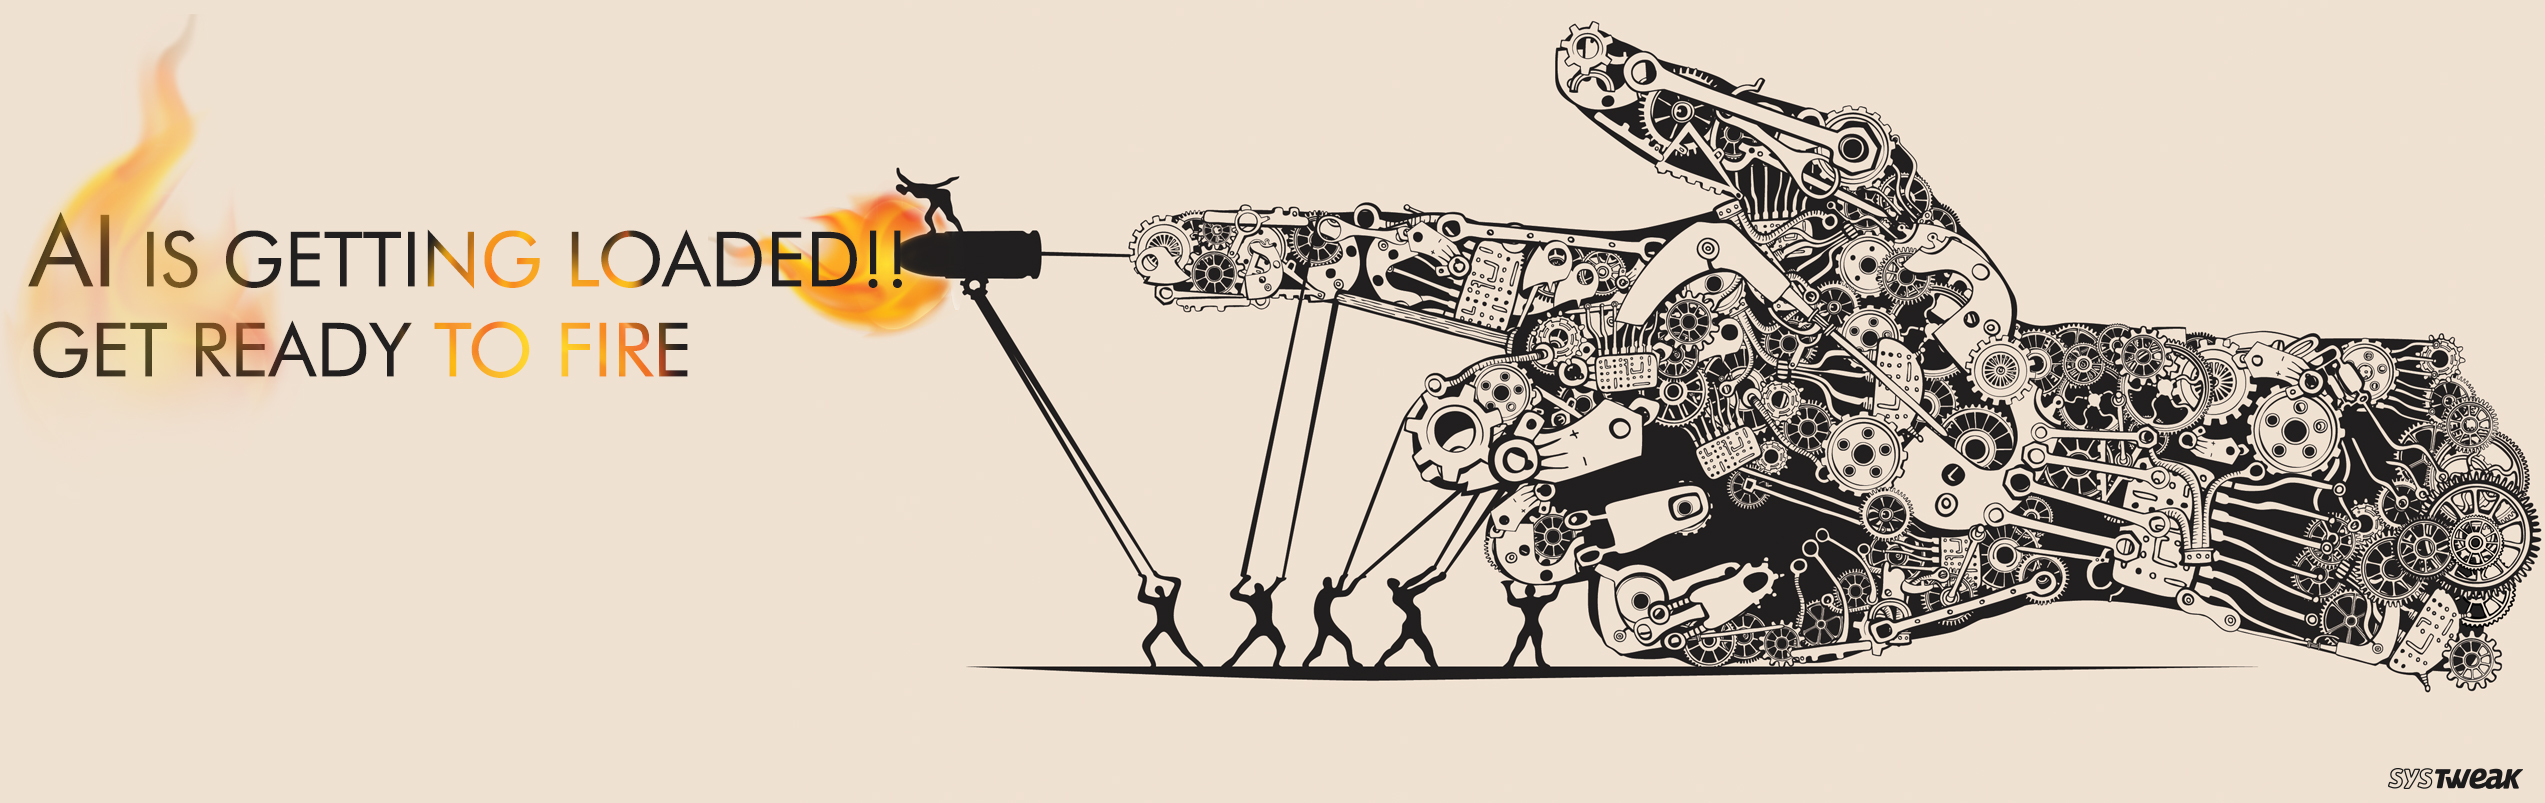 The Armed Artificial Intelligence: Lethal or Savior?